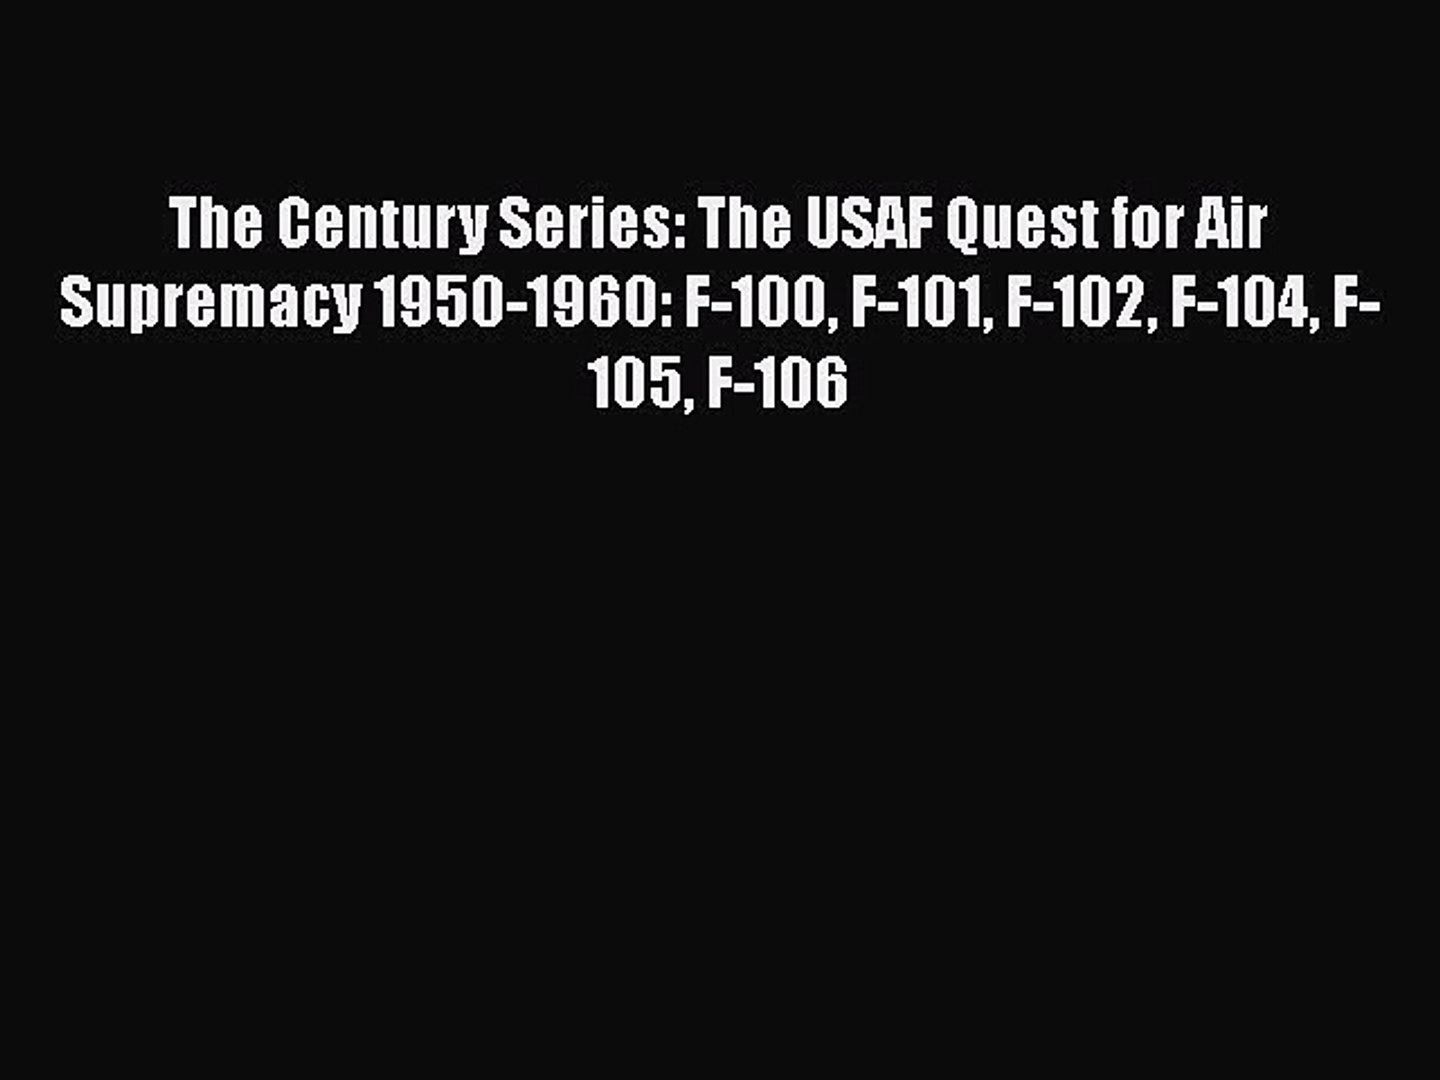 [Online PDF] The Century Series: The USAF Quest for Air Supremacy 1950-1960: F-100 F-101 F-102